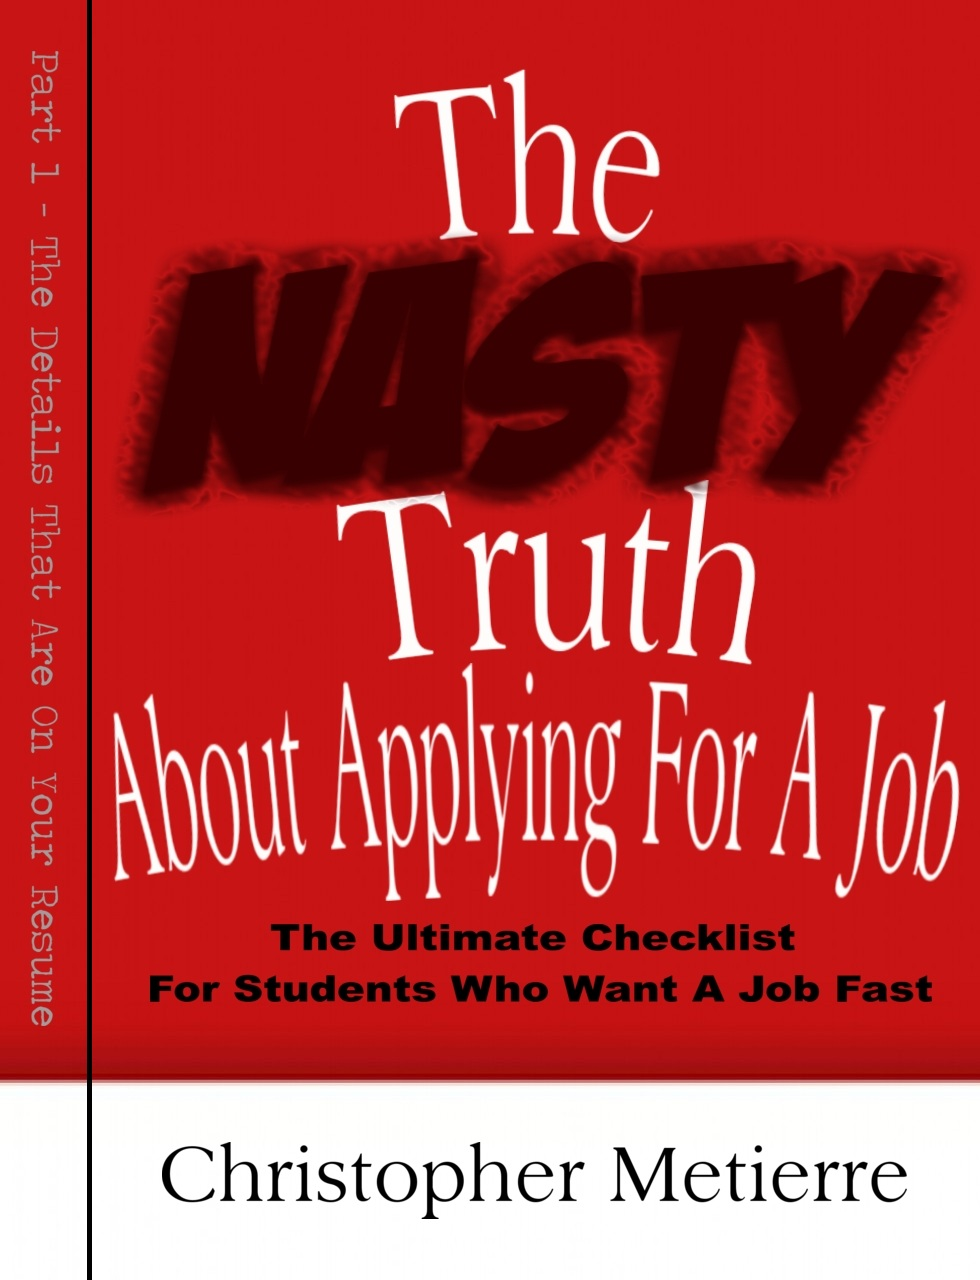 The Nasty Truth About Applying For A Job